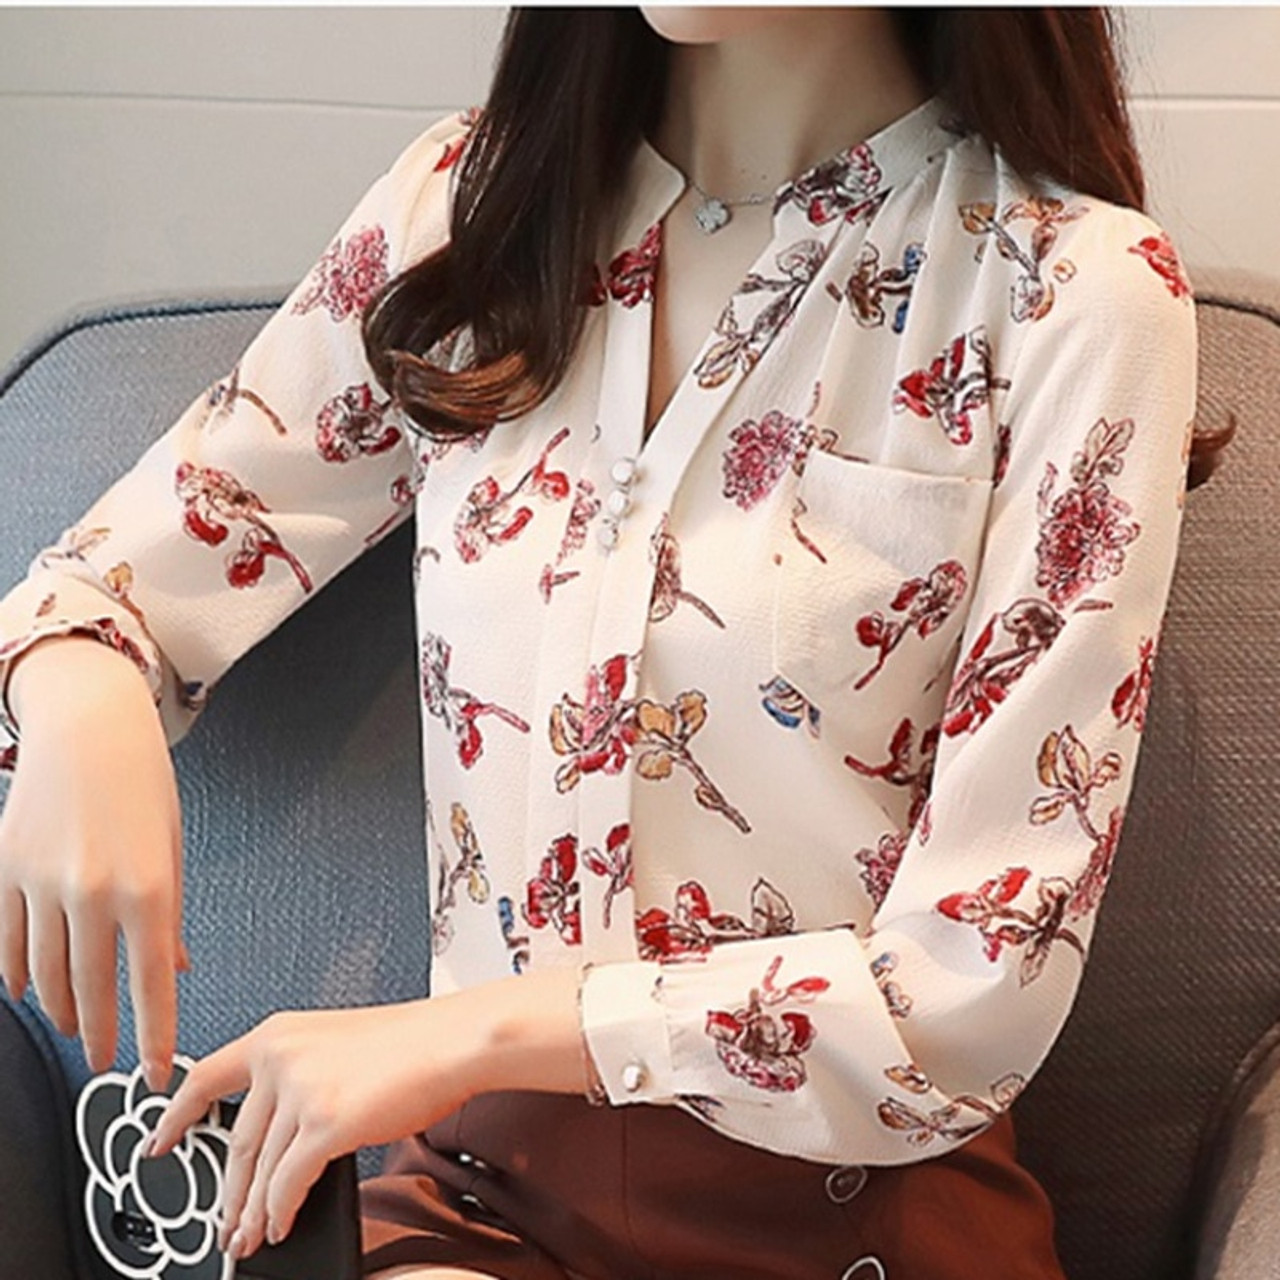 8660442677a8c1 ... 2018 Womens Tops And Blouses Autumn Fashion V-Neck Chiffon Blouses Slim  Women Chiffon Blouse